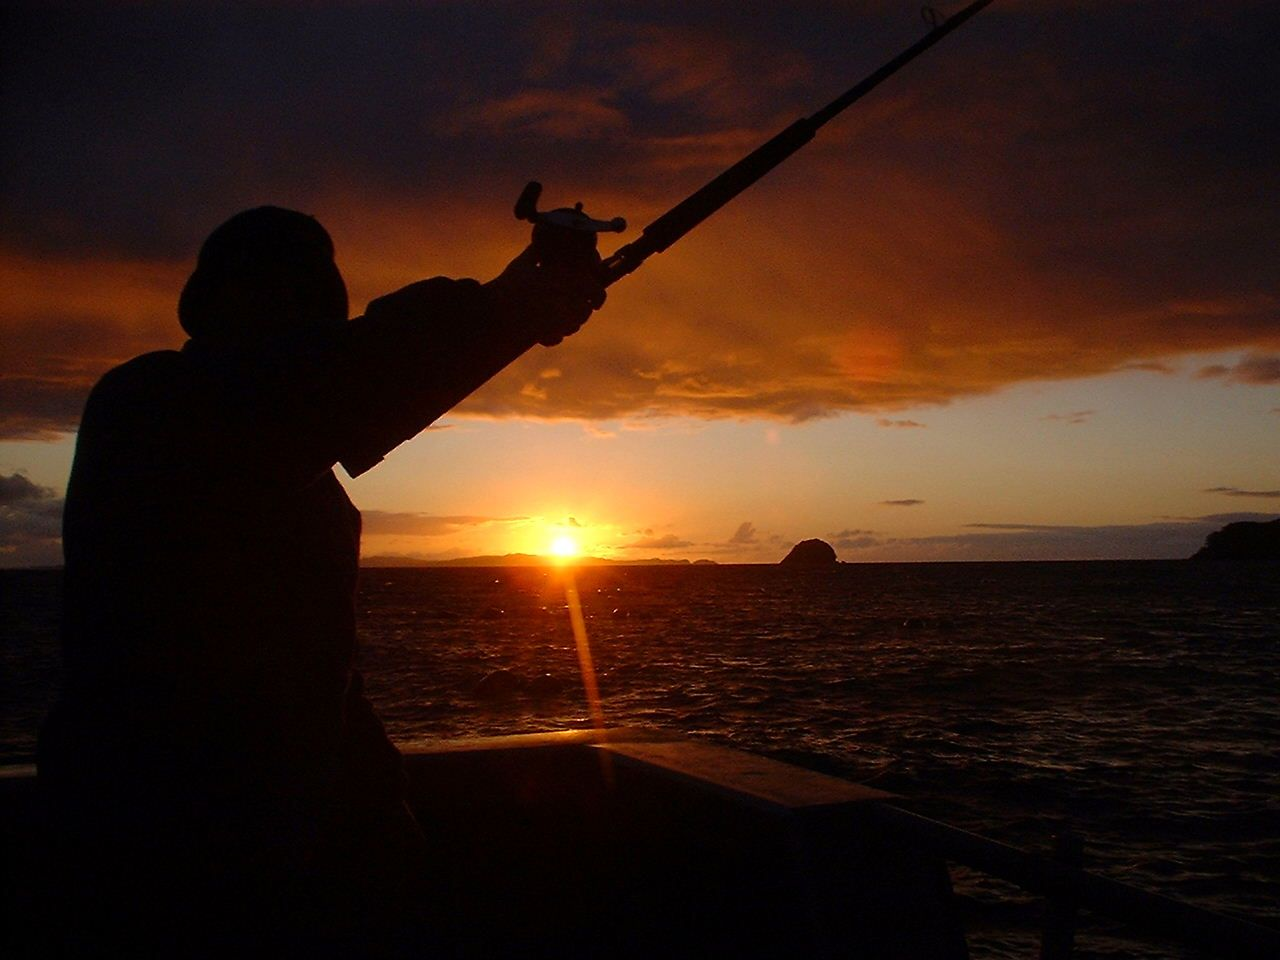 Fishing in New Zealand, silhouette on beautiful sunset